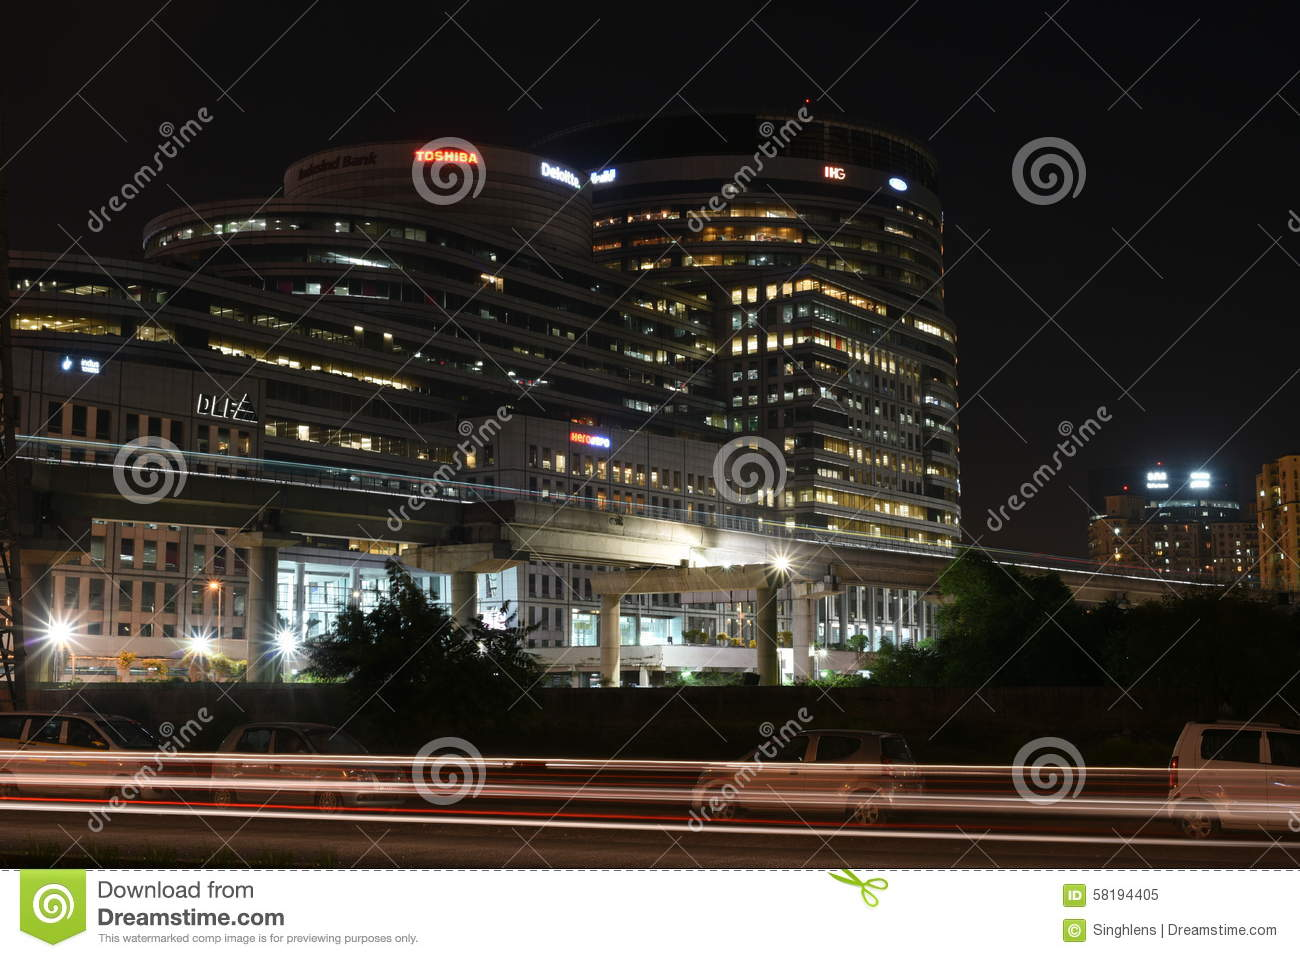 Gurgaon, India: Aug 15th, 2015:Famous DLF Office Complex in Gurgaon during night hours